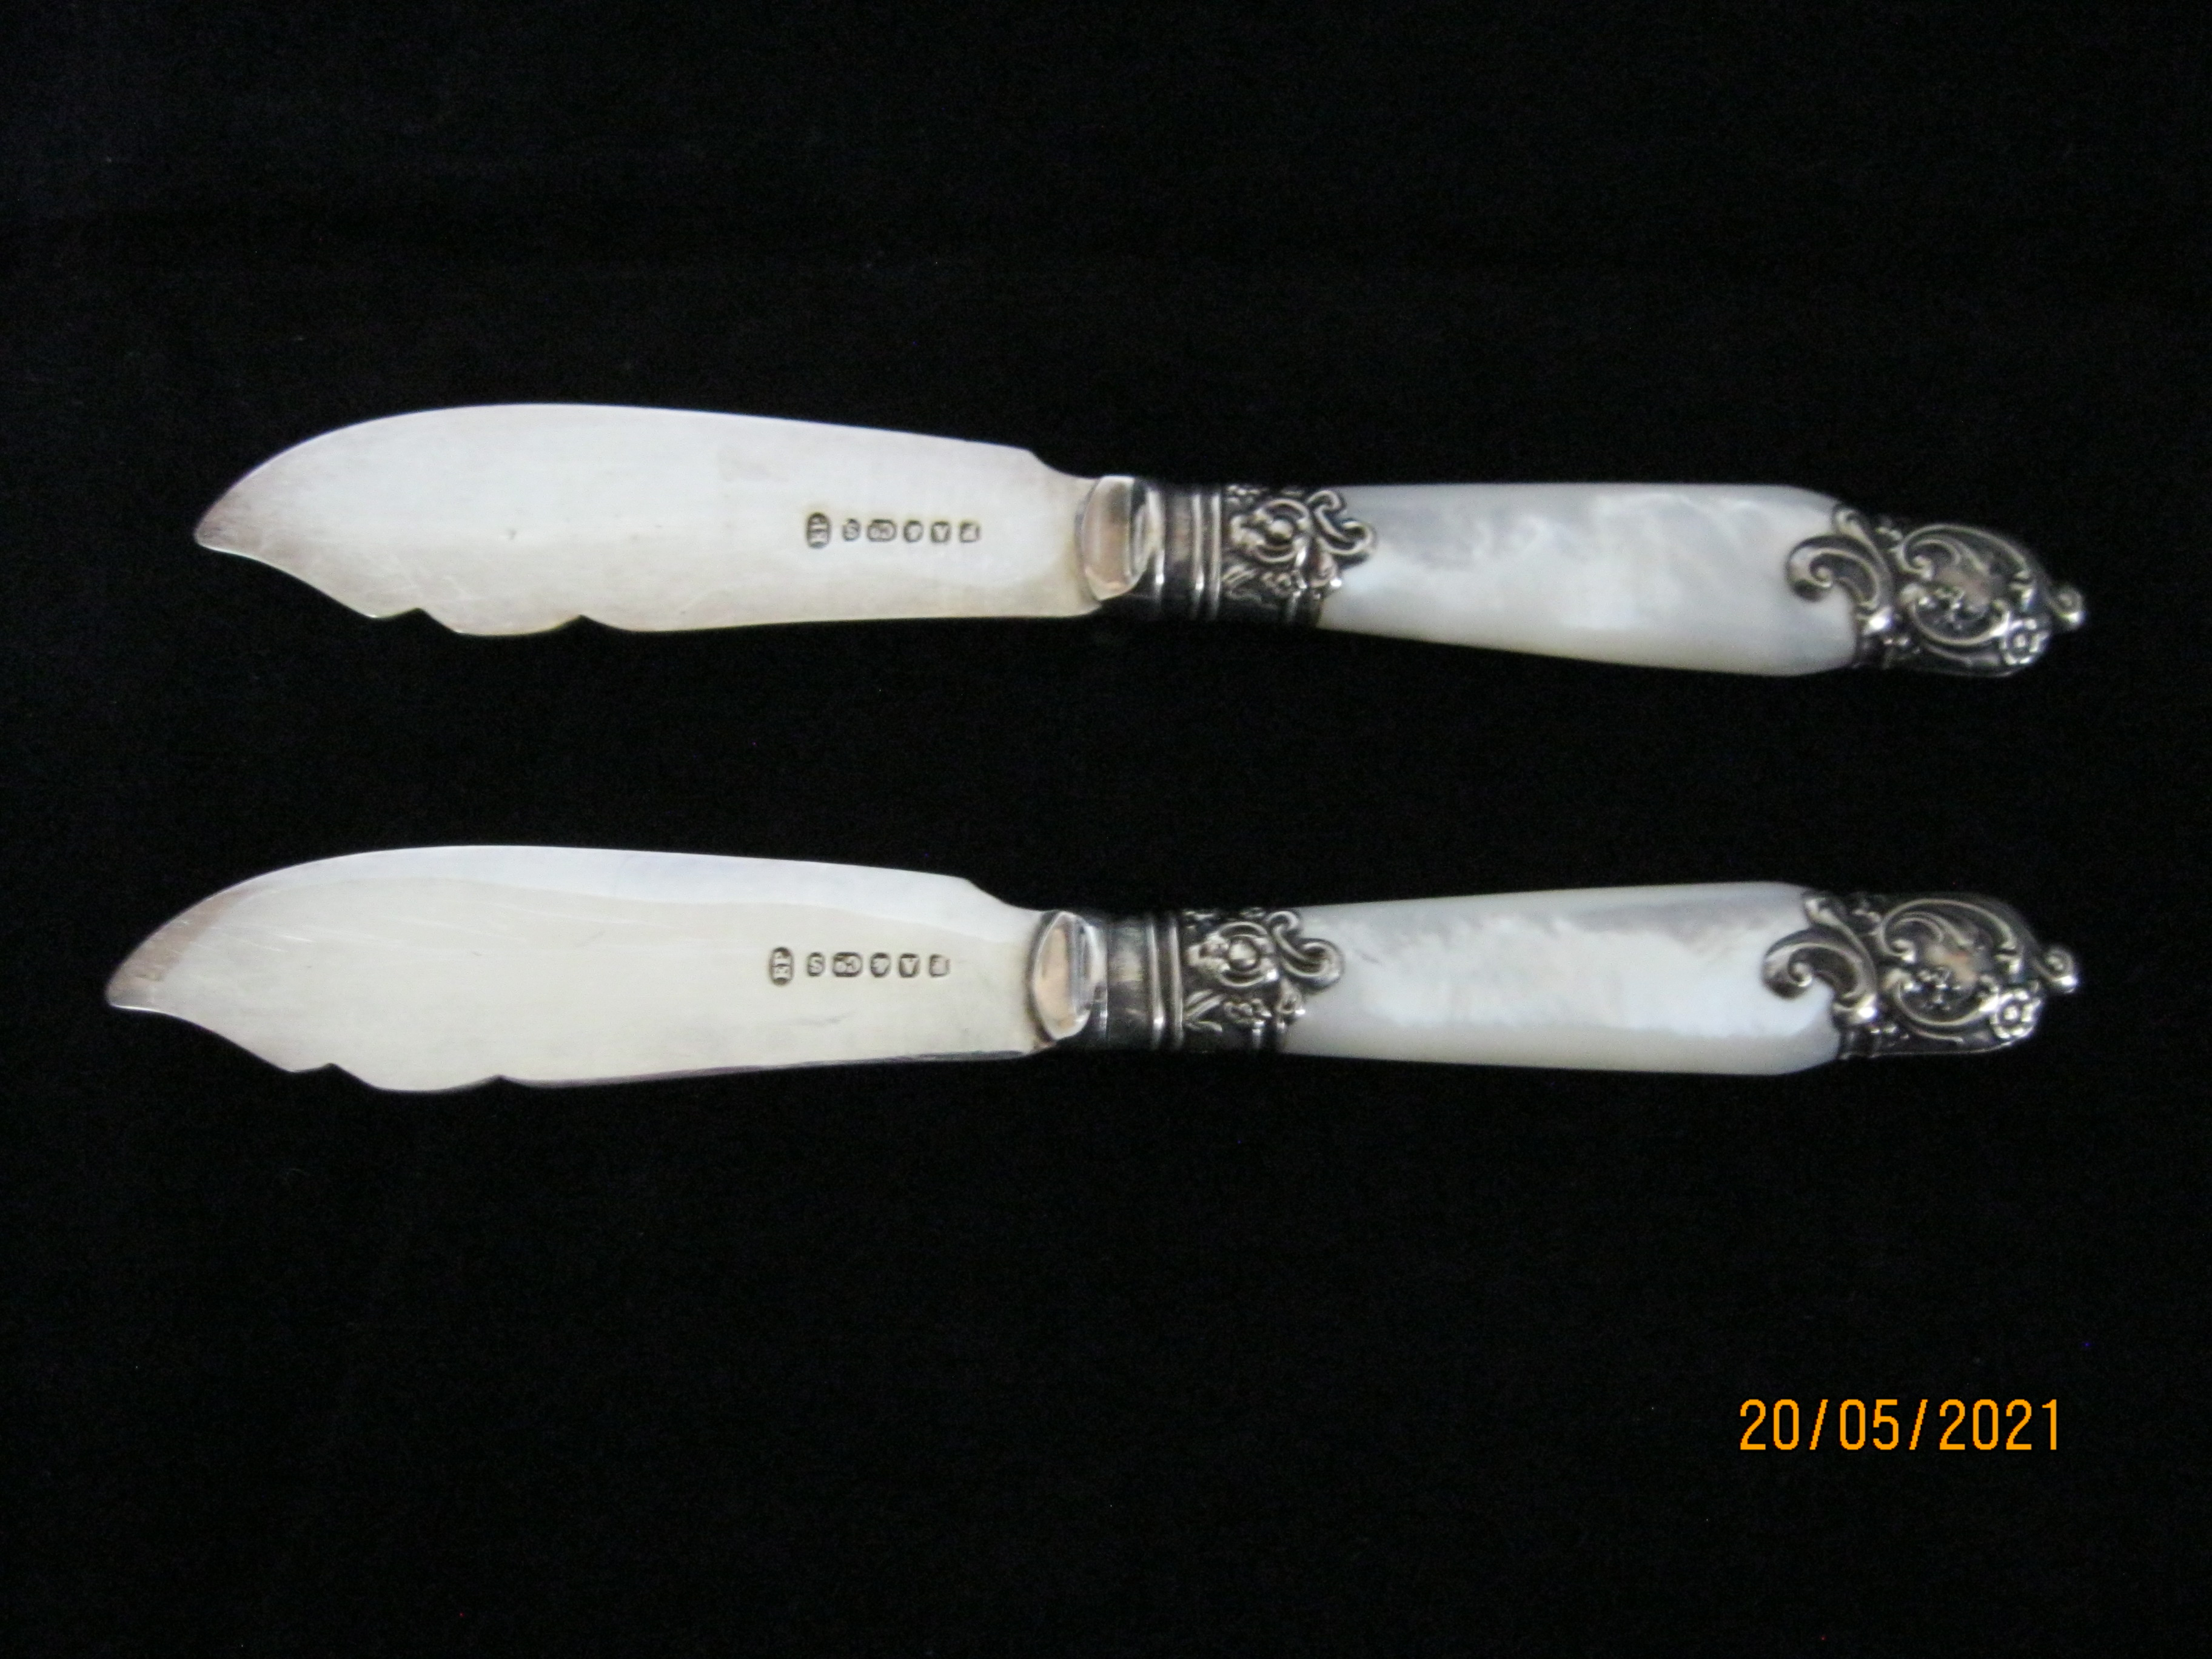 Pair Of Antique fruit Knifes With Mother Of Pearl Handles in Case - Image 6 of 9